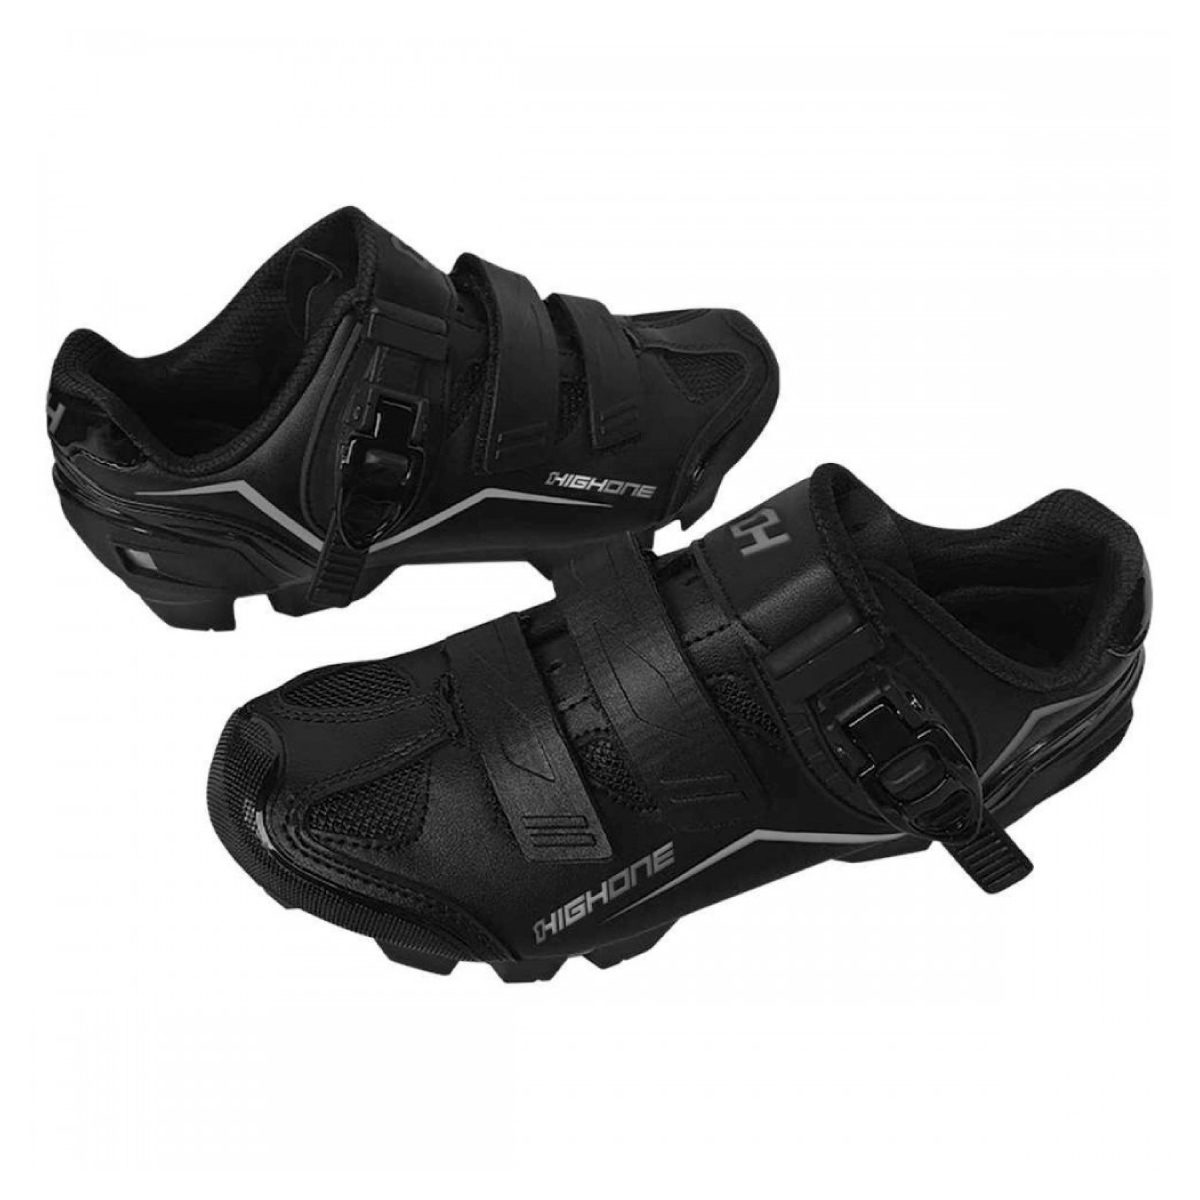 Sapatilha MTB High One Feet Com Trava Preto e Cinza